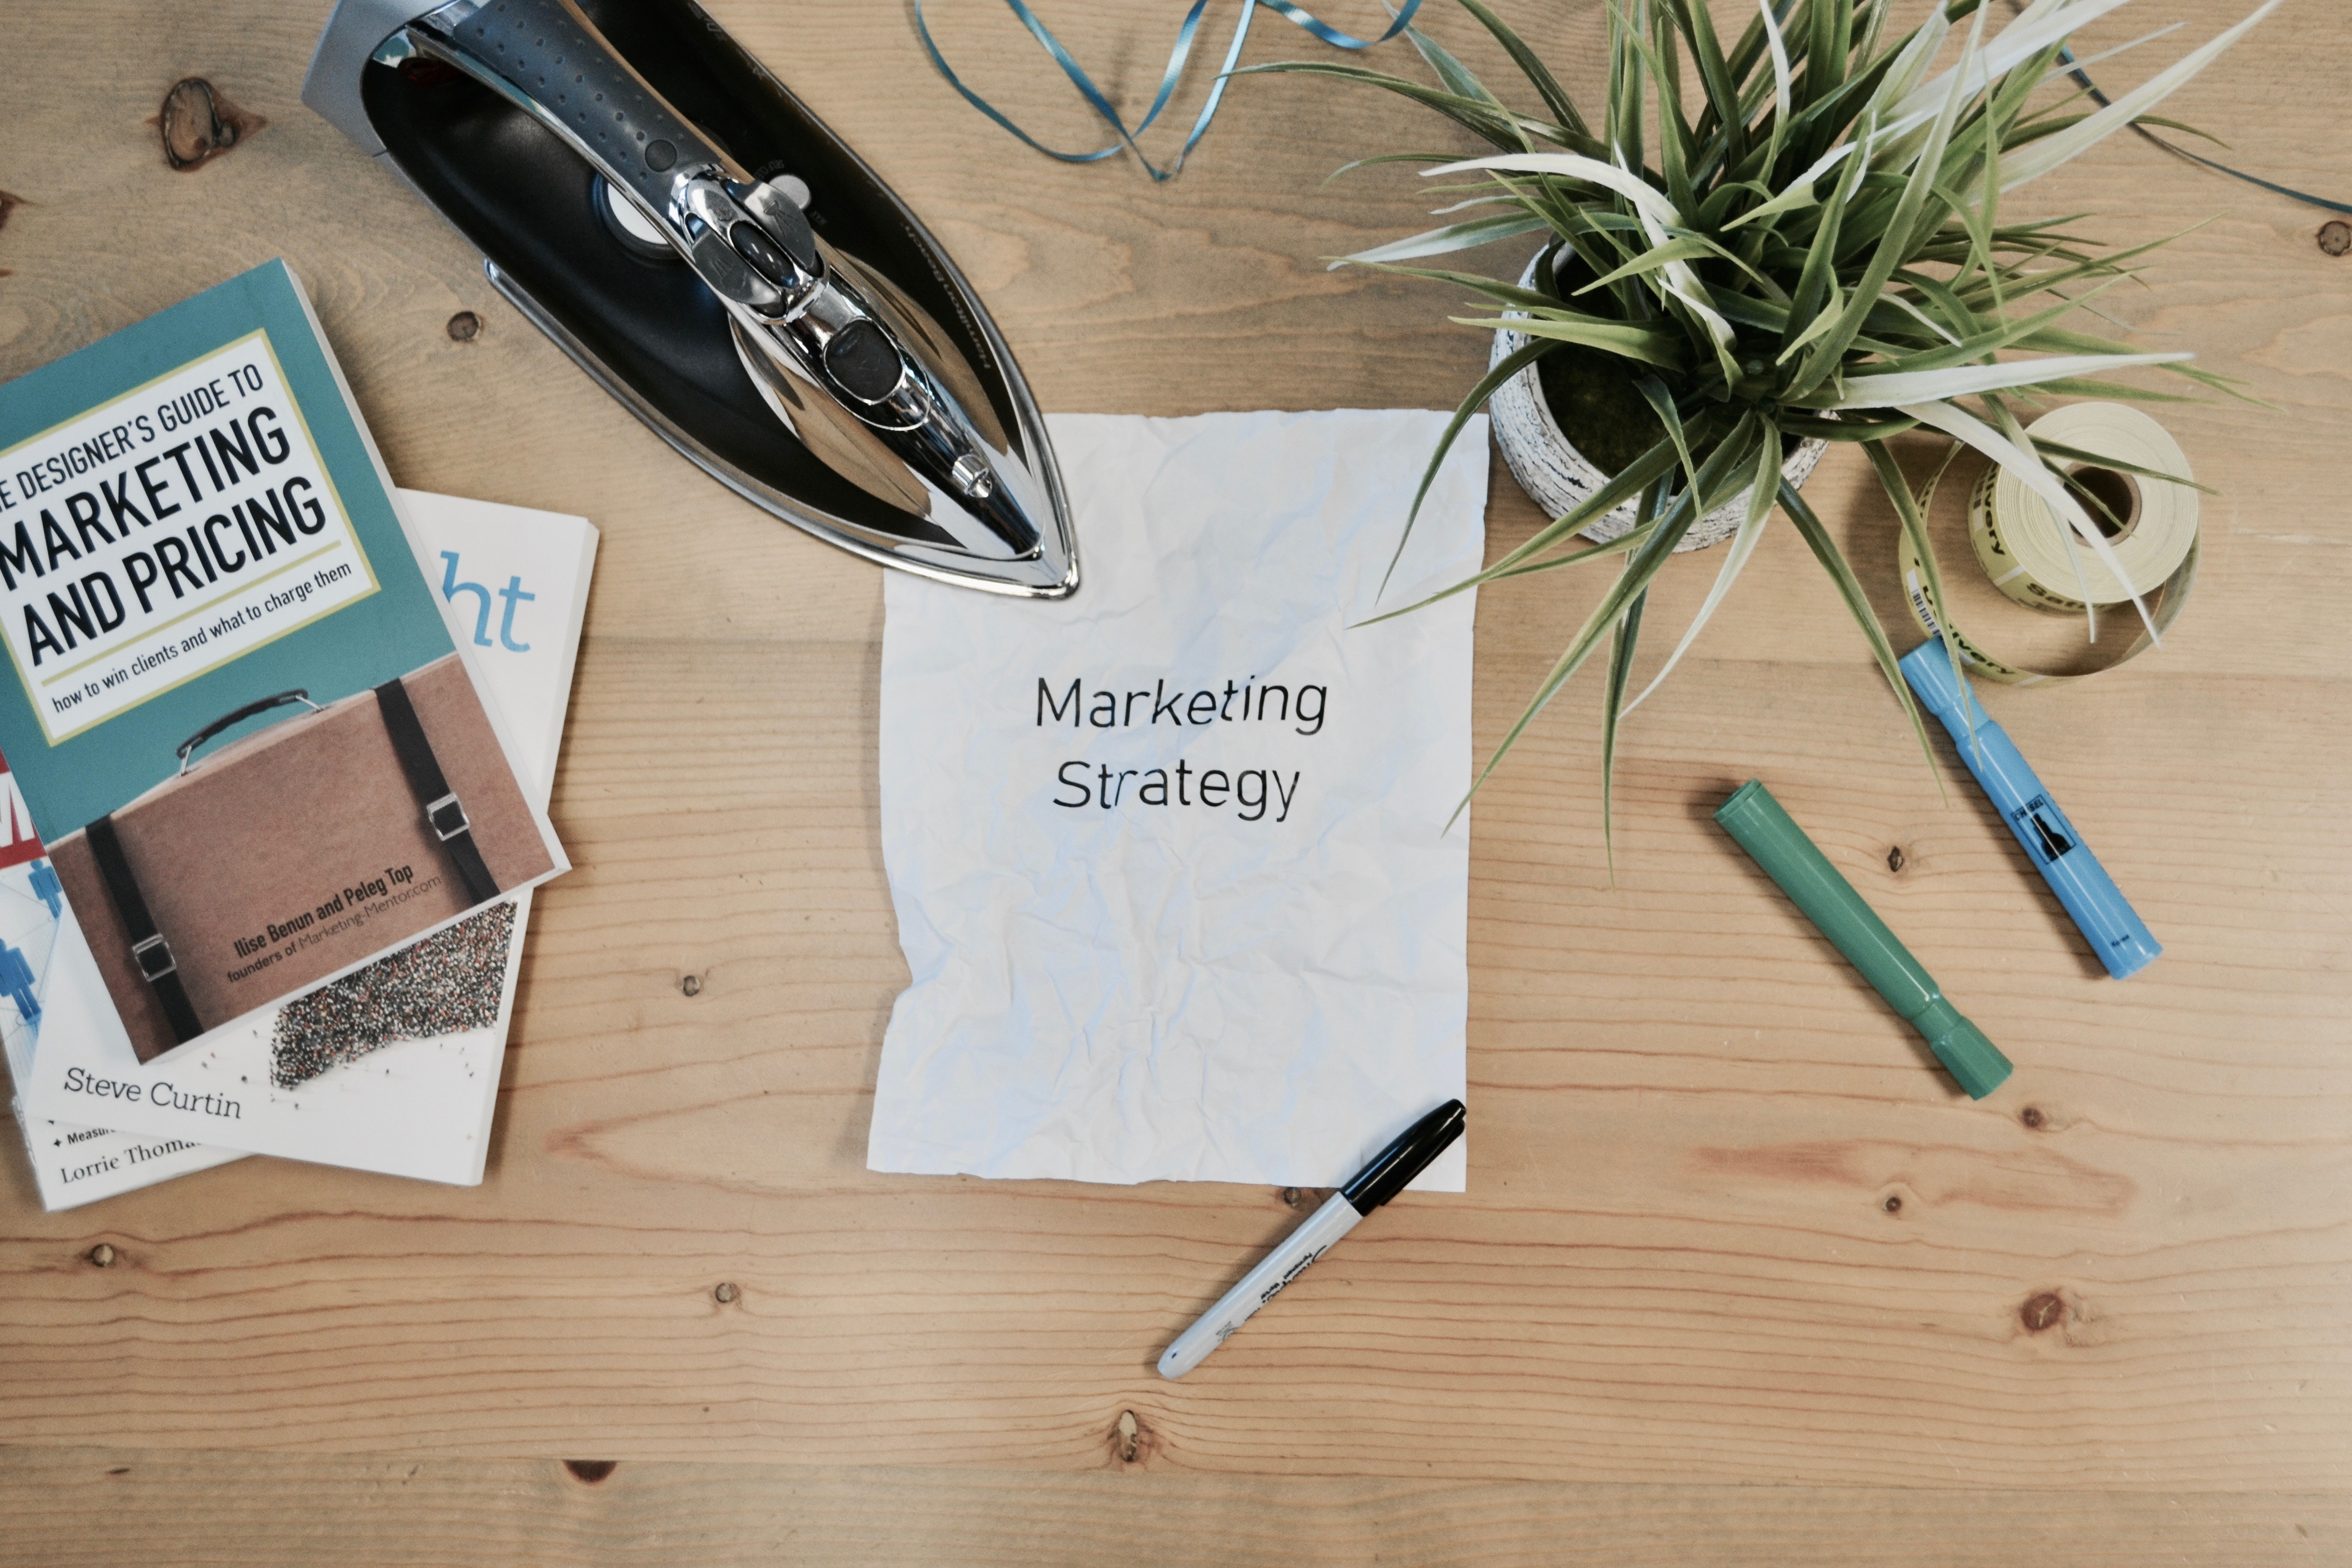 """A4 sheet reading """"marketing strategy"""", surround by assorted items, including a clothes iron and potted plant"""